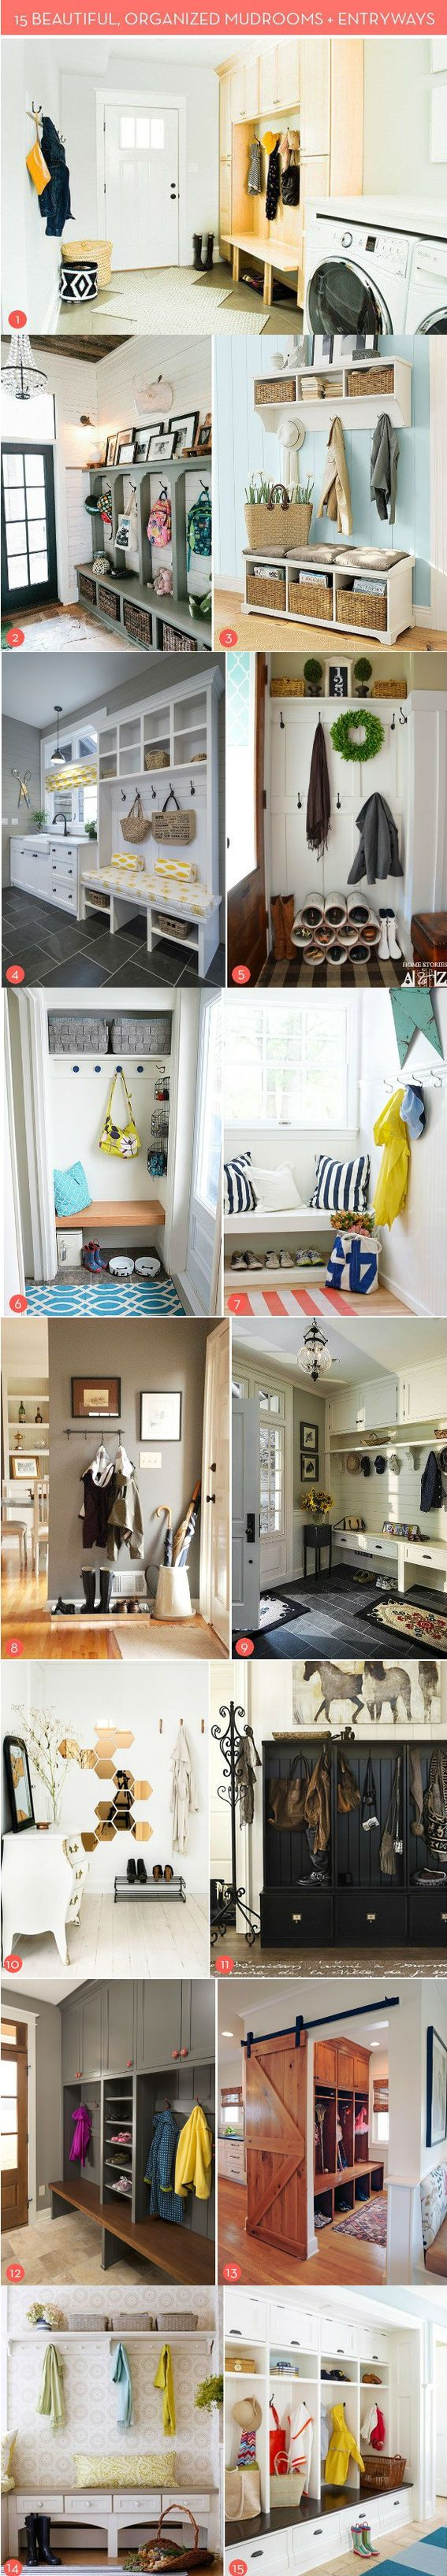 15 Storage and Organization Ideas For Entryways and Mudrooms | http://www.diyideasandcrafts.com/15-storage-and-organization-ideas-for-entryways-and-mudrooms/